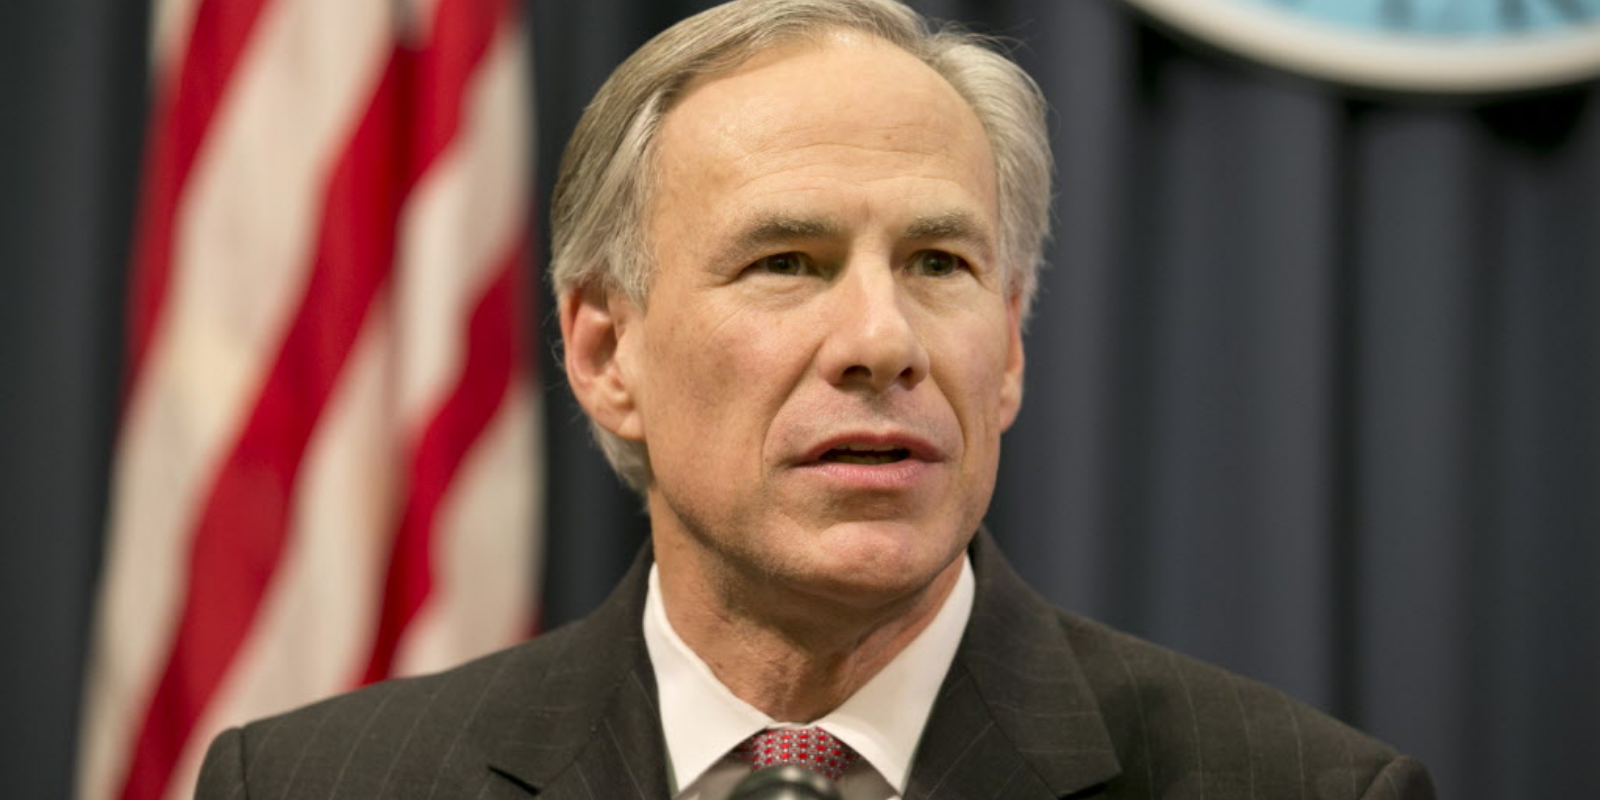 Gov. Abbott to sign bill barring Texas cities from defunding police